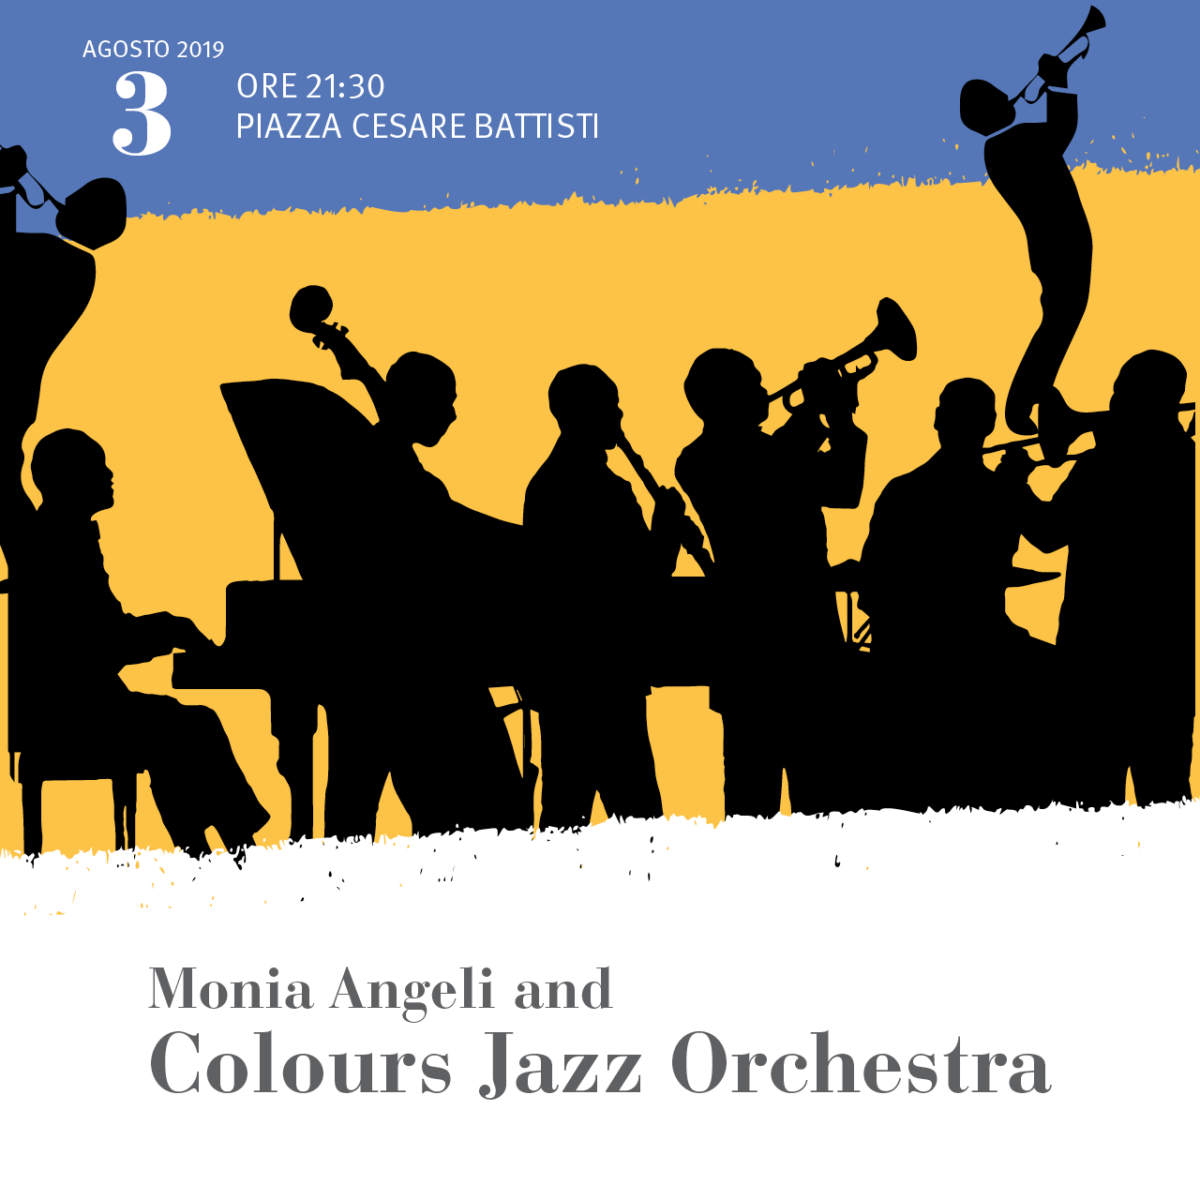 Monia Angeli and Colours Jazz Orchestra